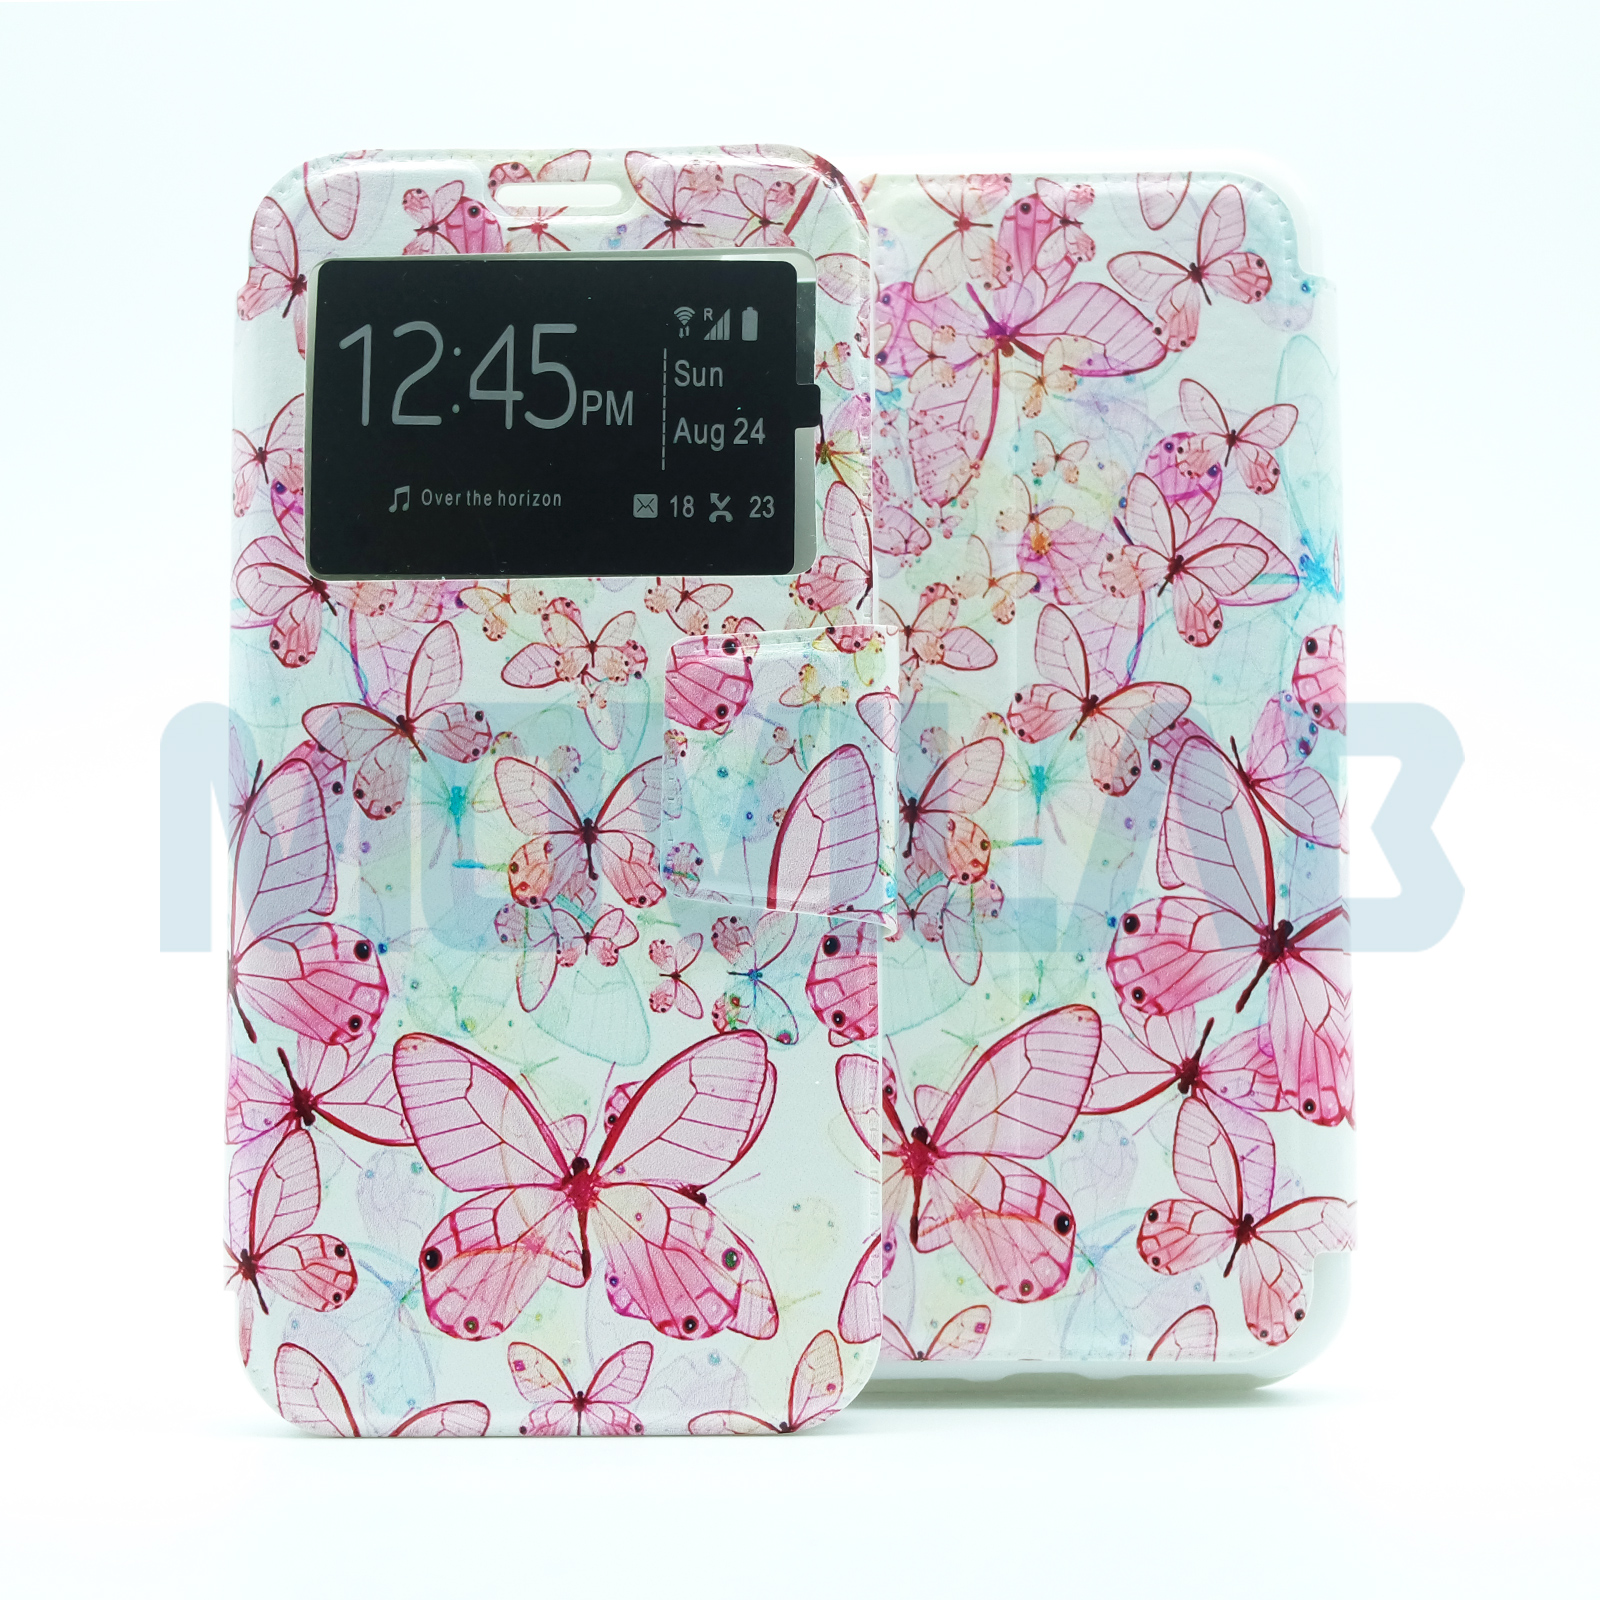 Funda Iphone XS Max mariposas